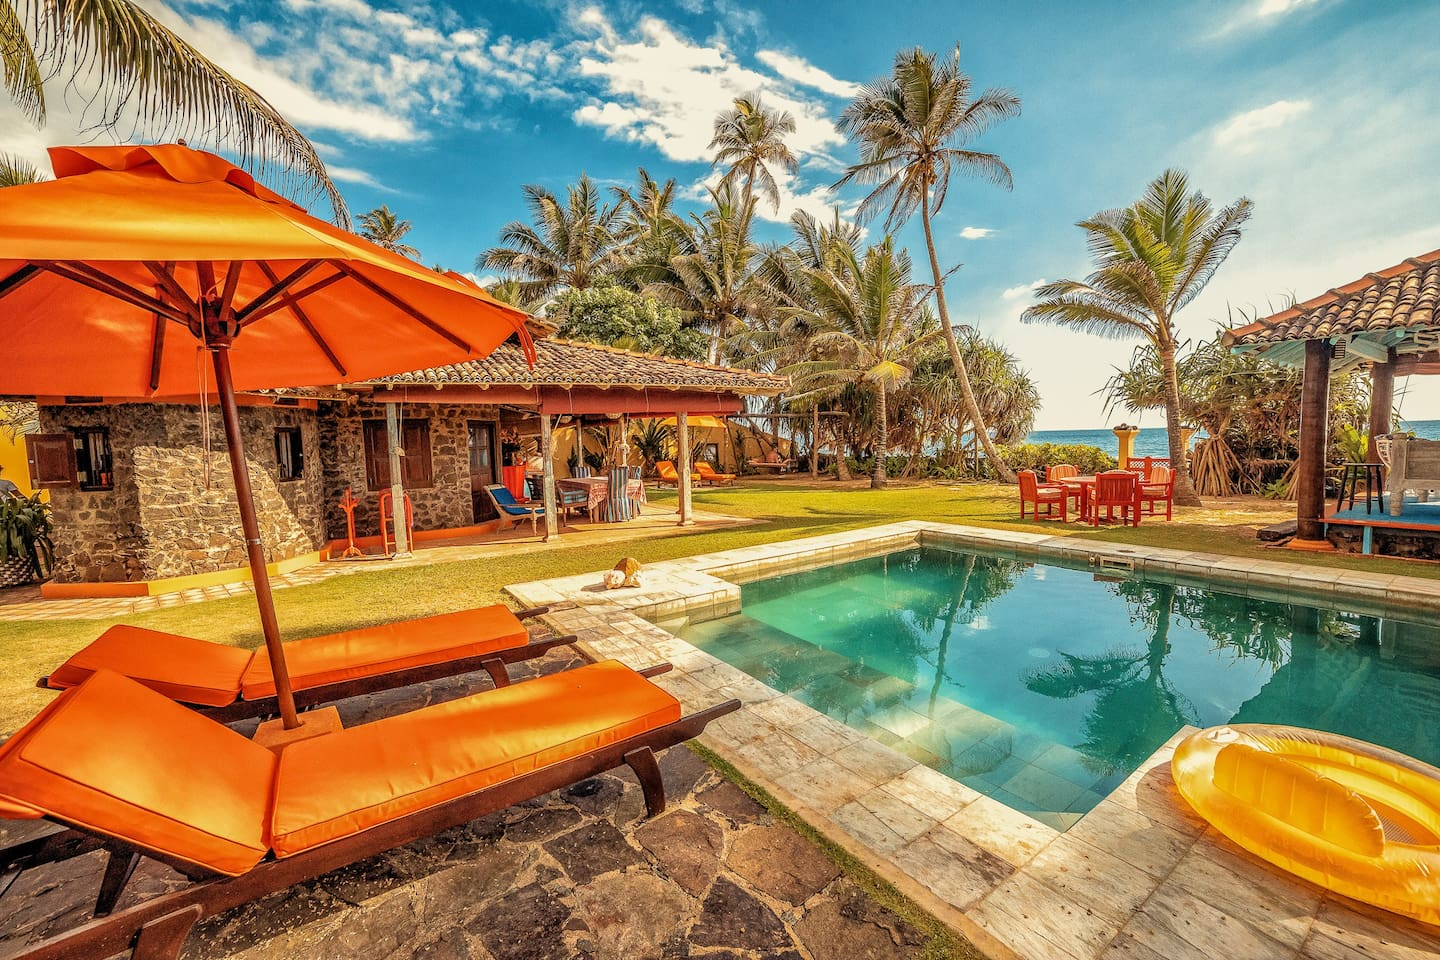 Kikili Beach House is a one-bedroom villa, right next to the beach.